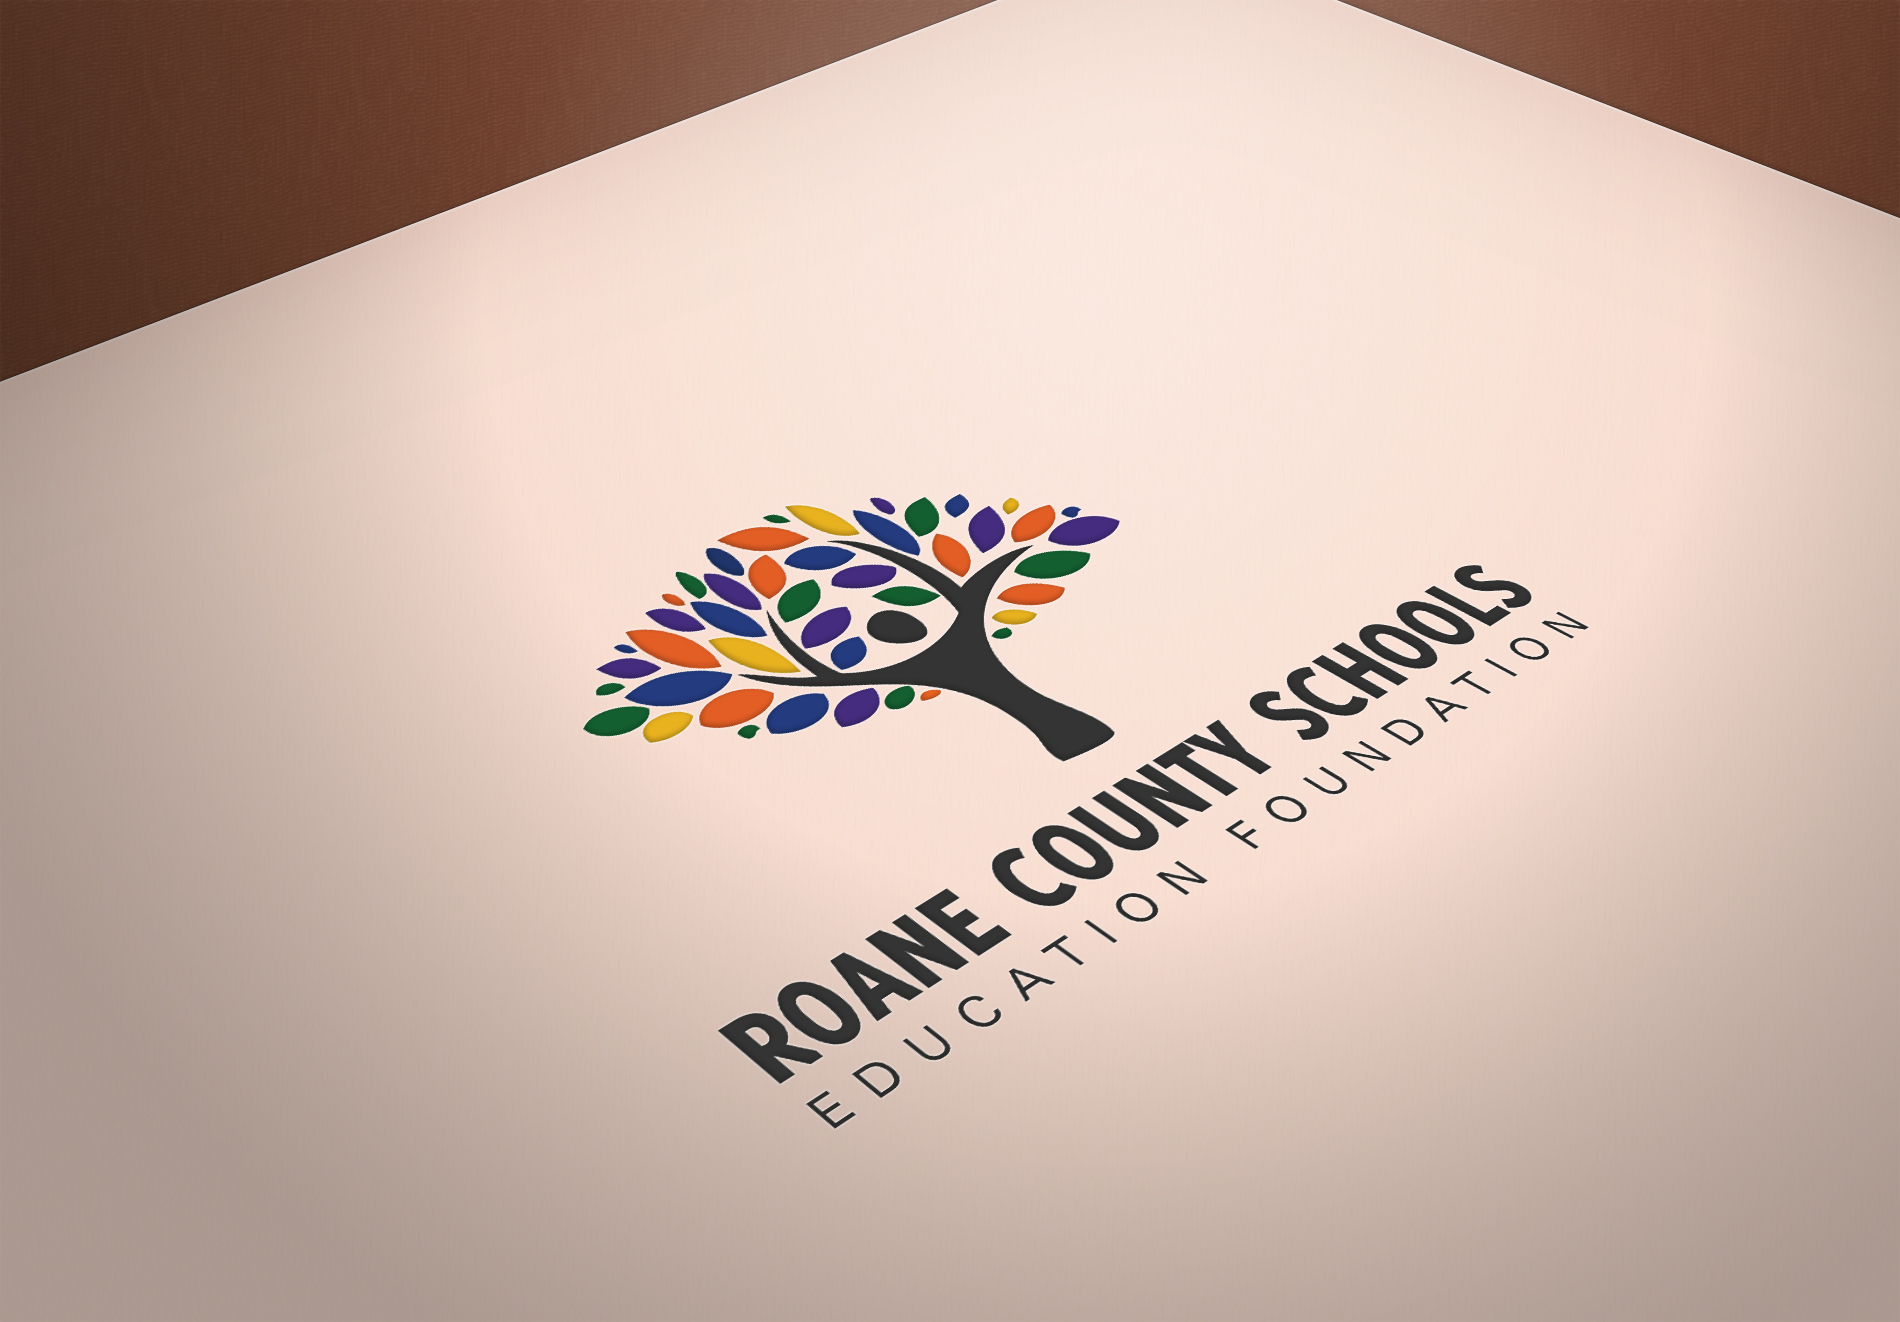 Roane County Schools Education Foundation Brand Identity    Services provided: Brand Strategy, Logo Design, Corporate Design Guidelines